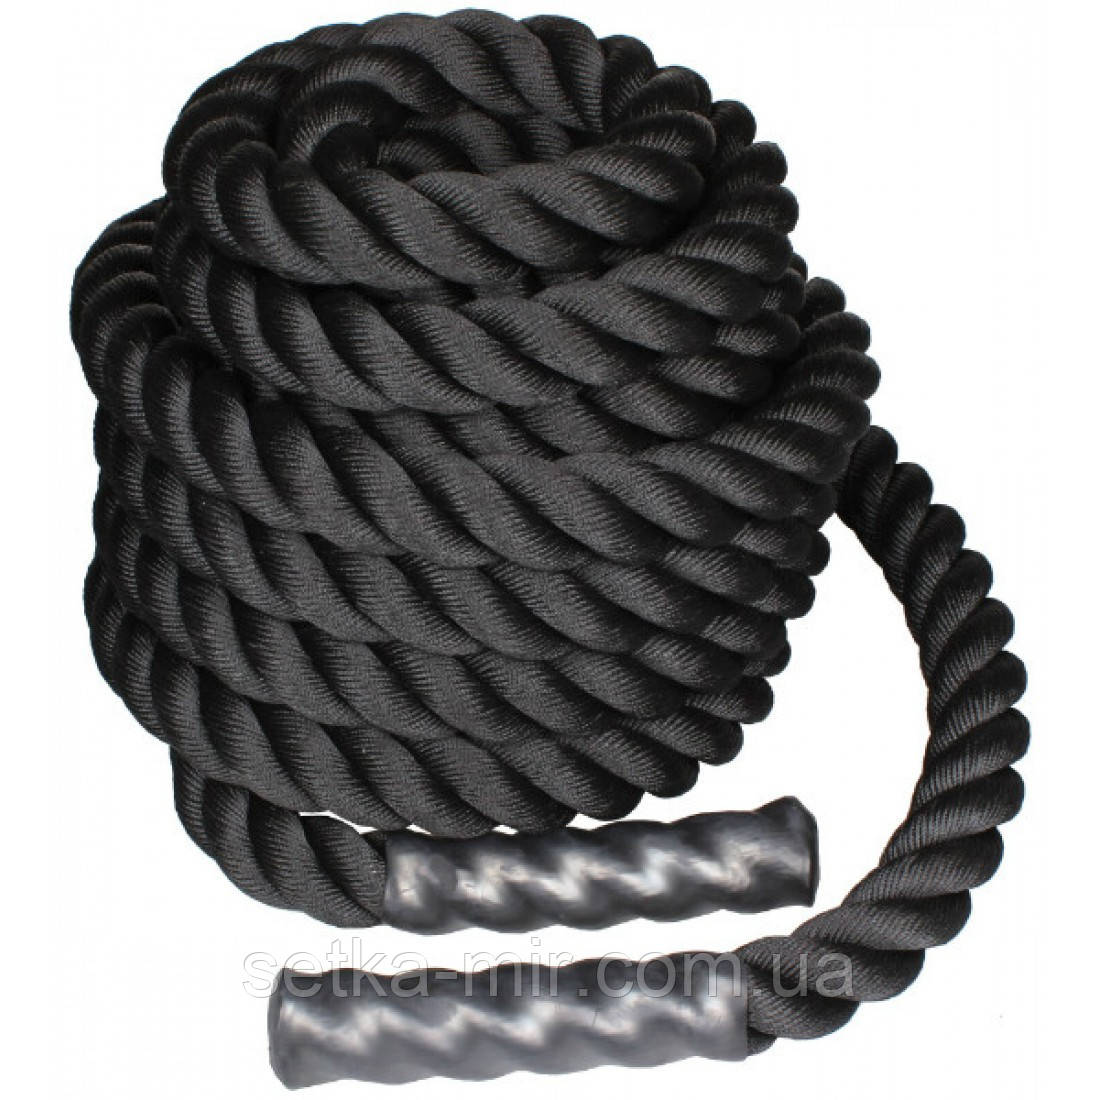 Канат для кроссфита LiveUp Battle Rope, 6 м